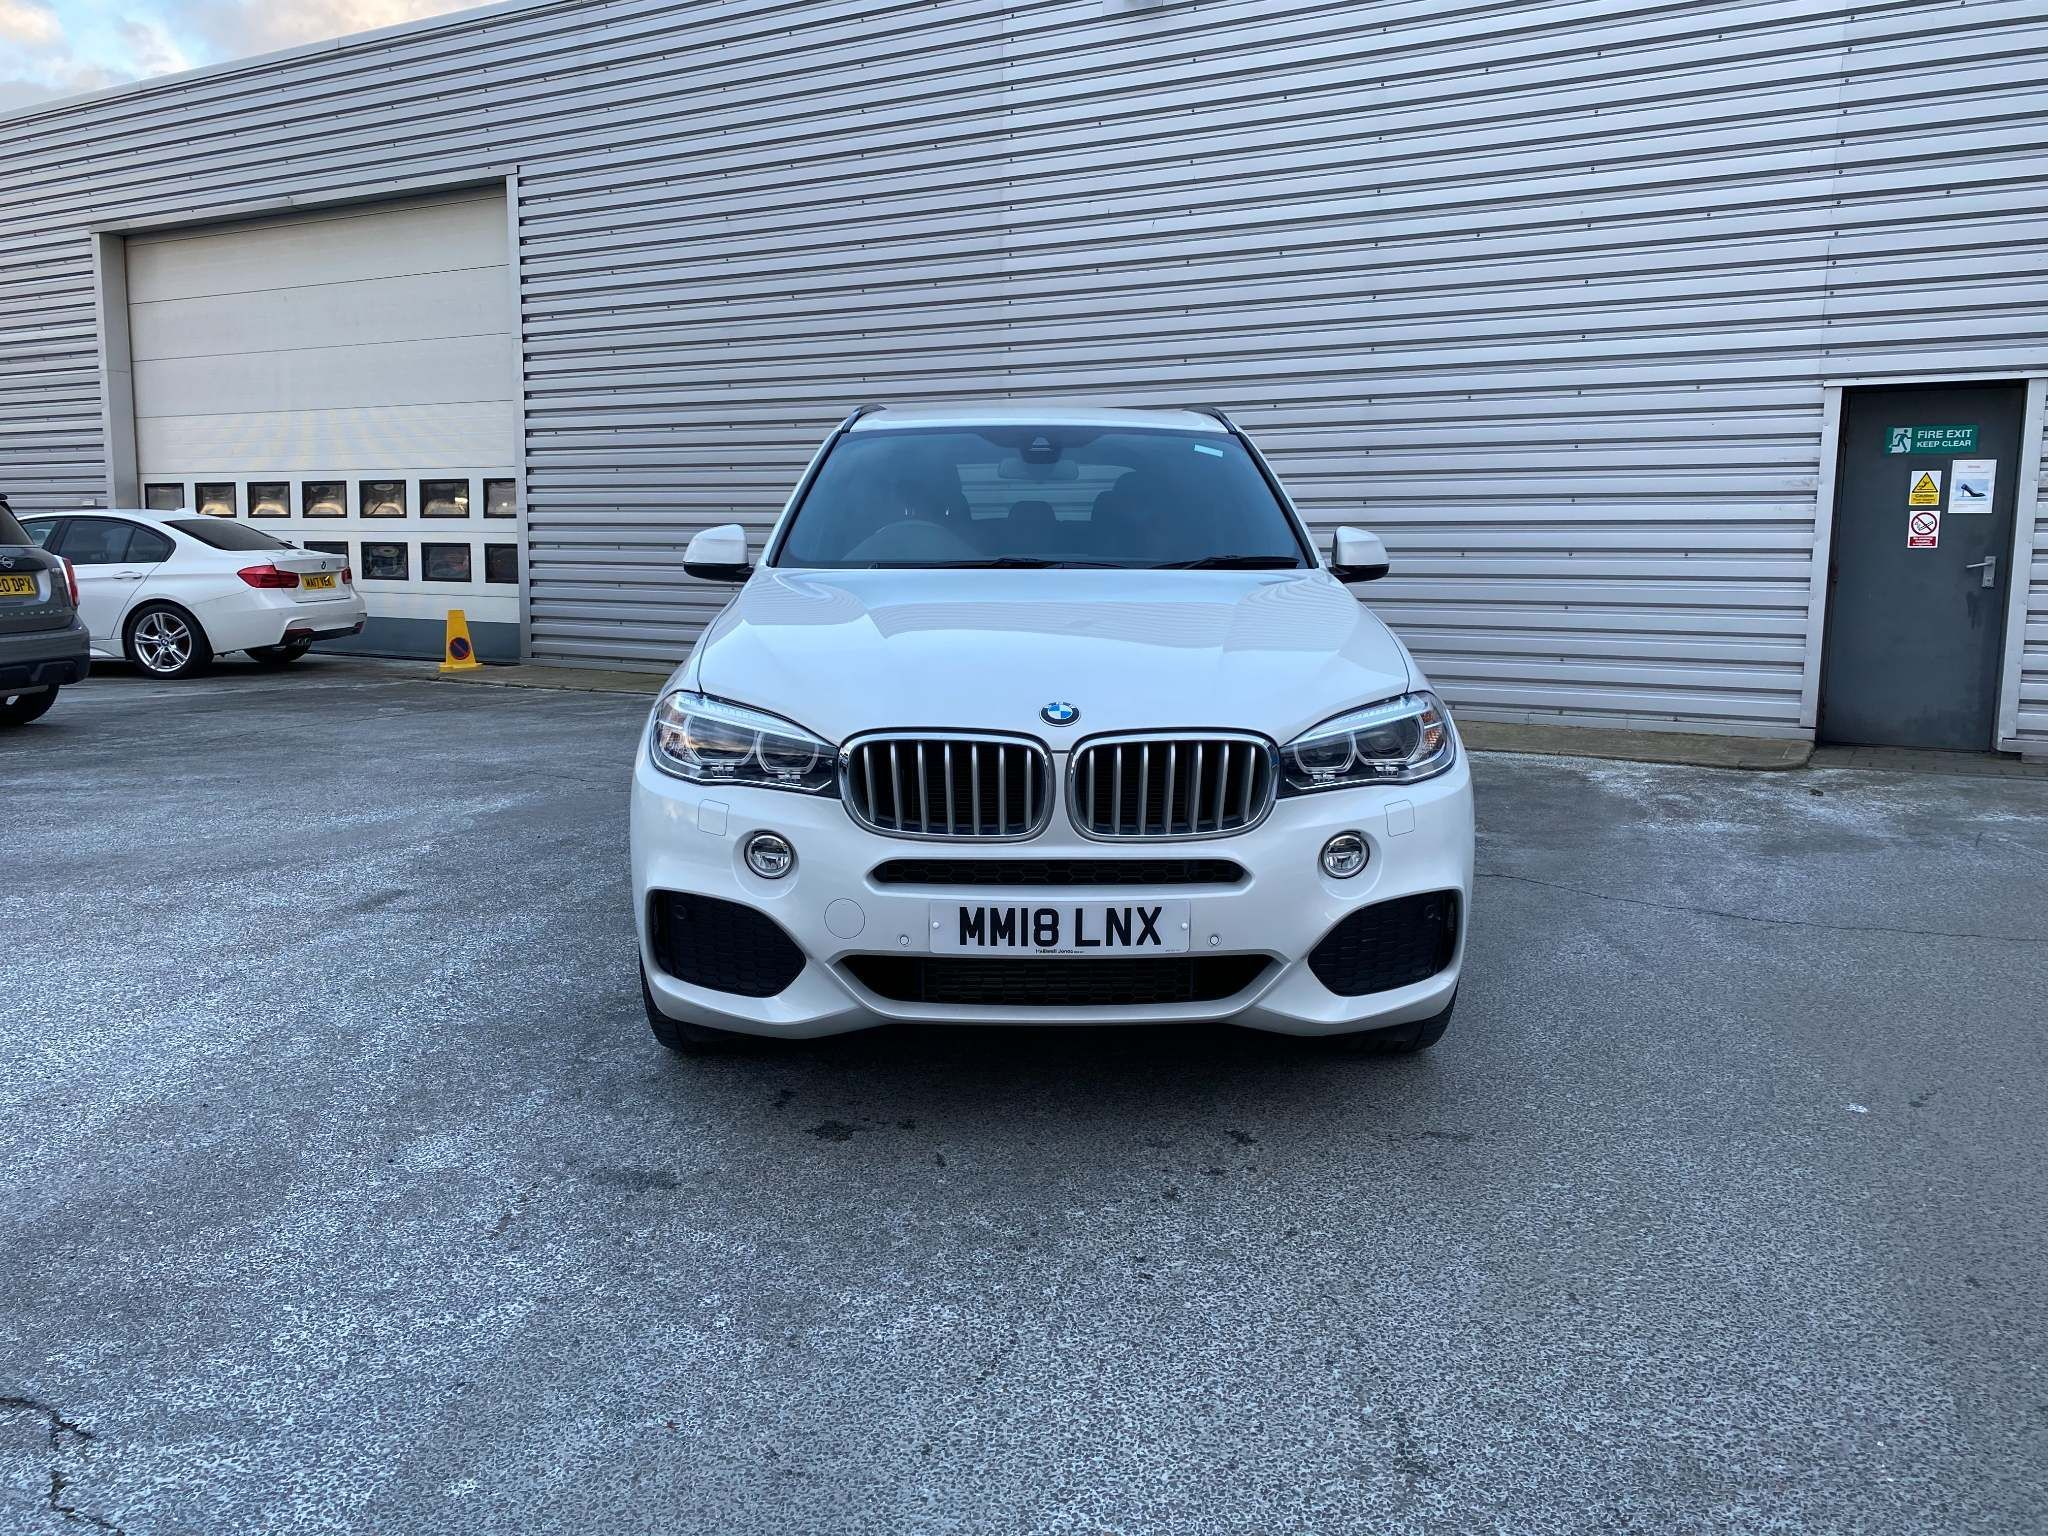 Image 4 - BMW xDrive40d M Sport (MM18LNX)